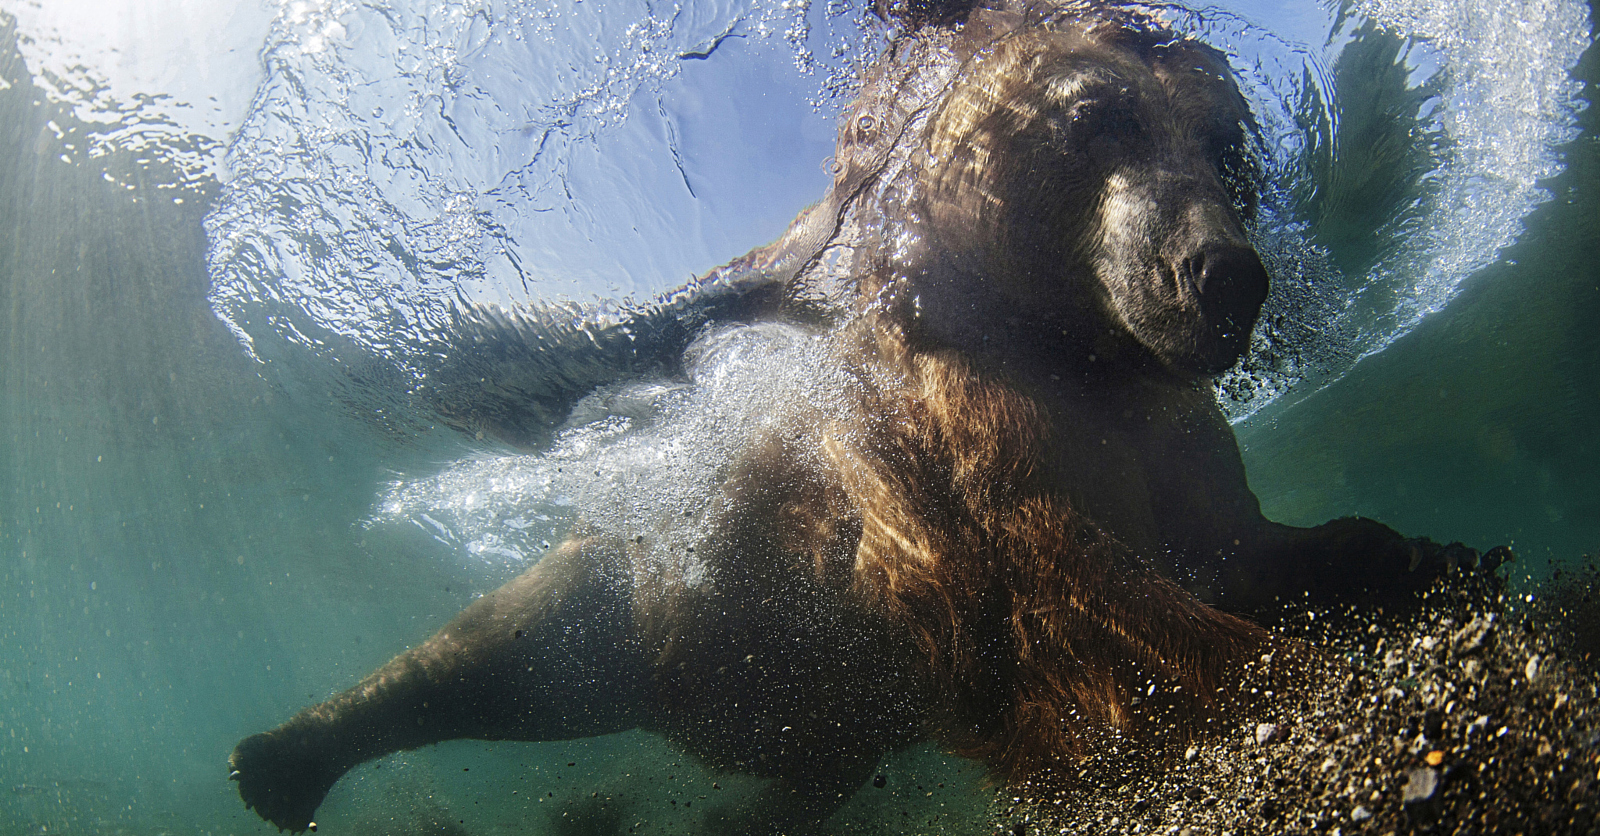 This Amazing Underwater Photo of a Bear Feeding Was Captured from a Cage!